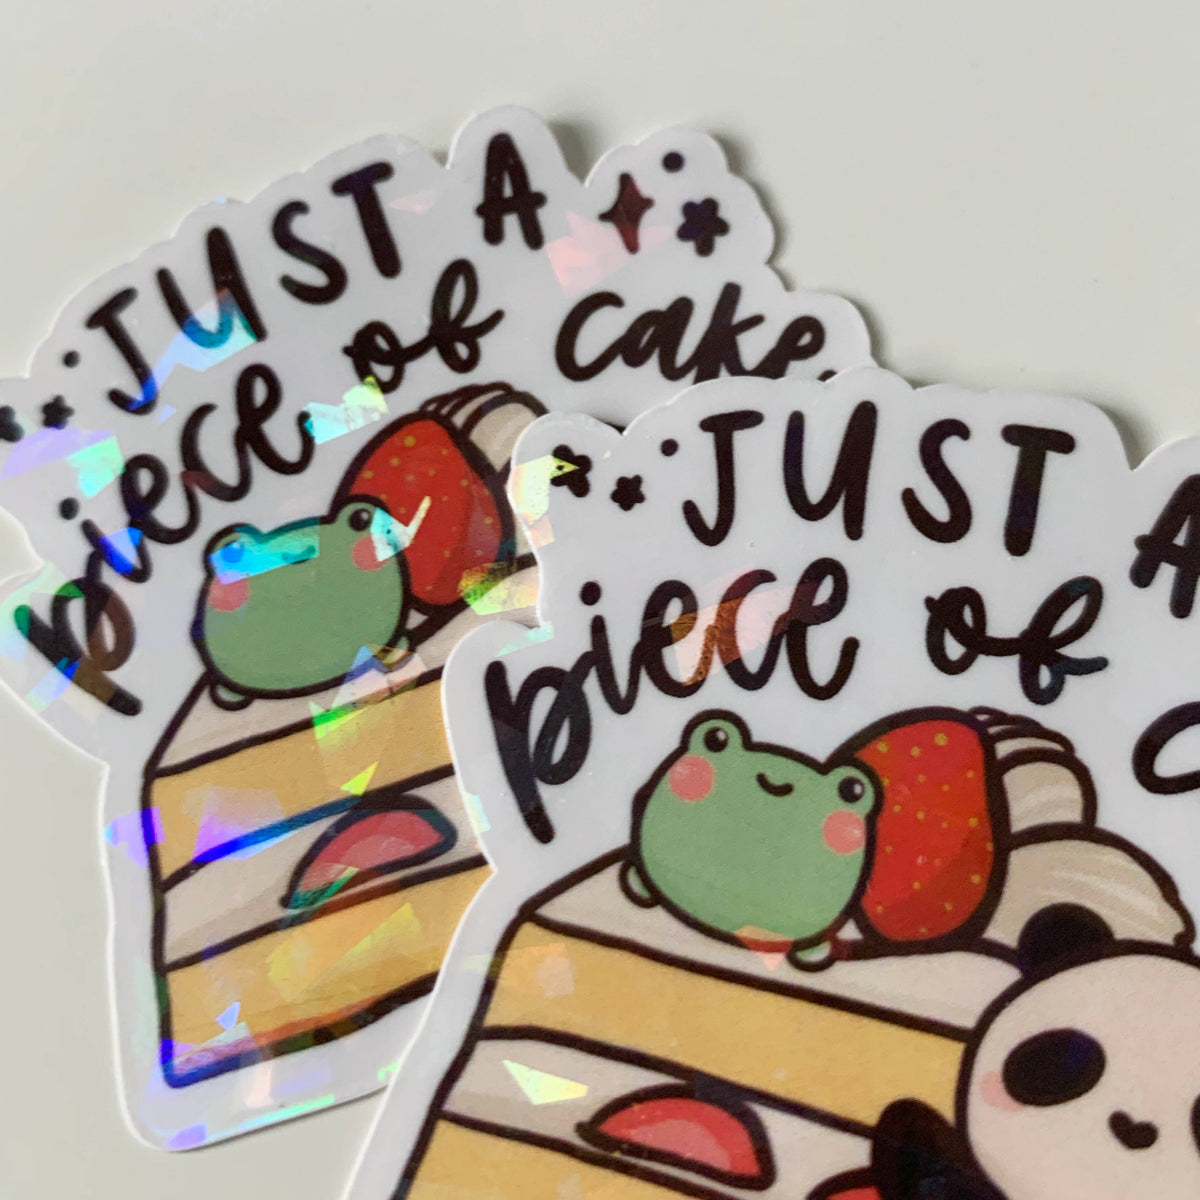 Just A Piece of Cake Sticker Flake